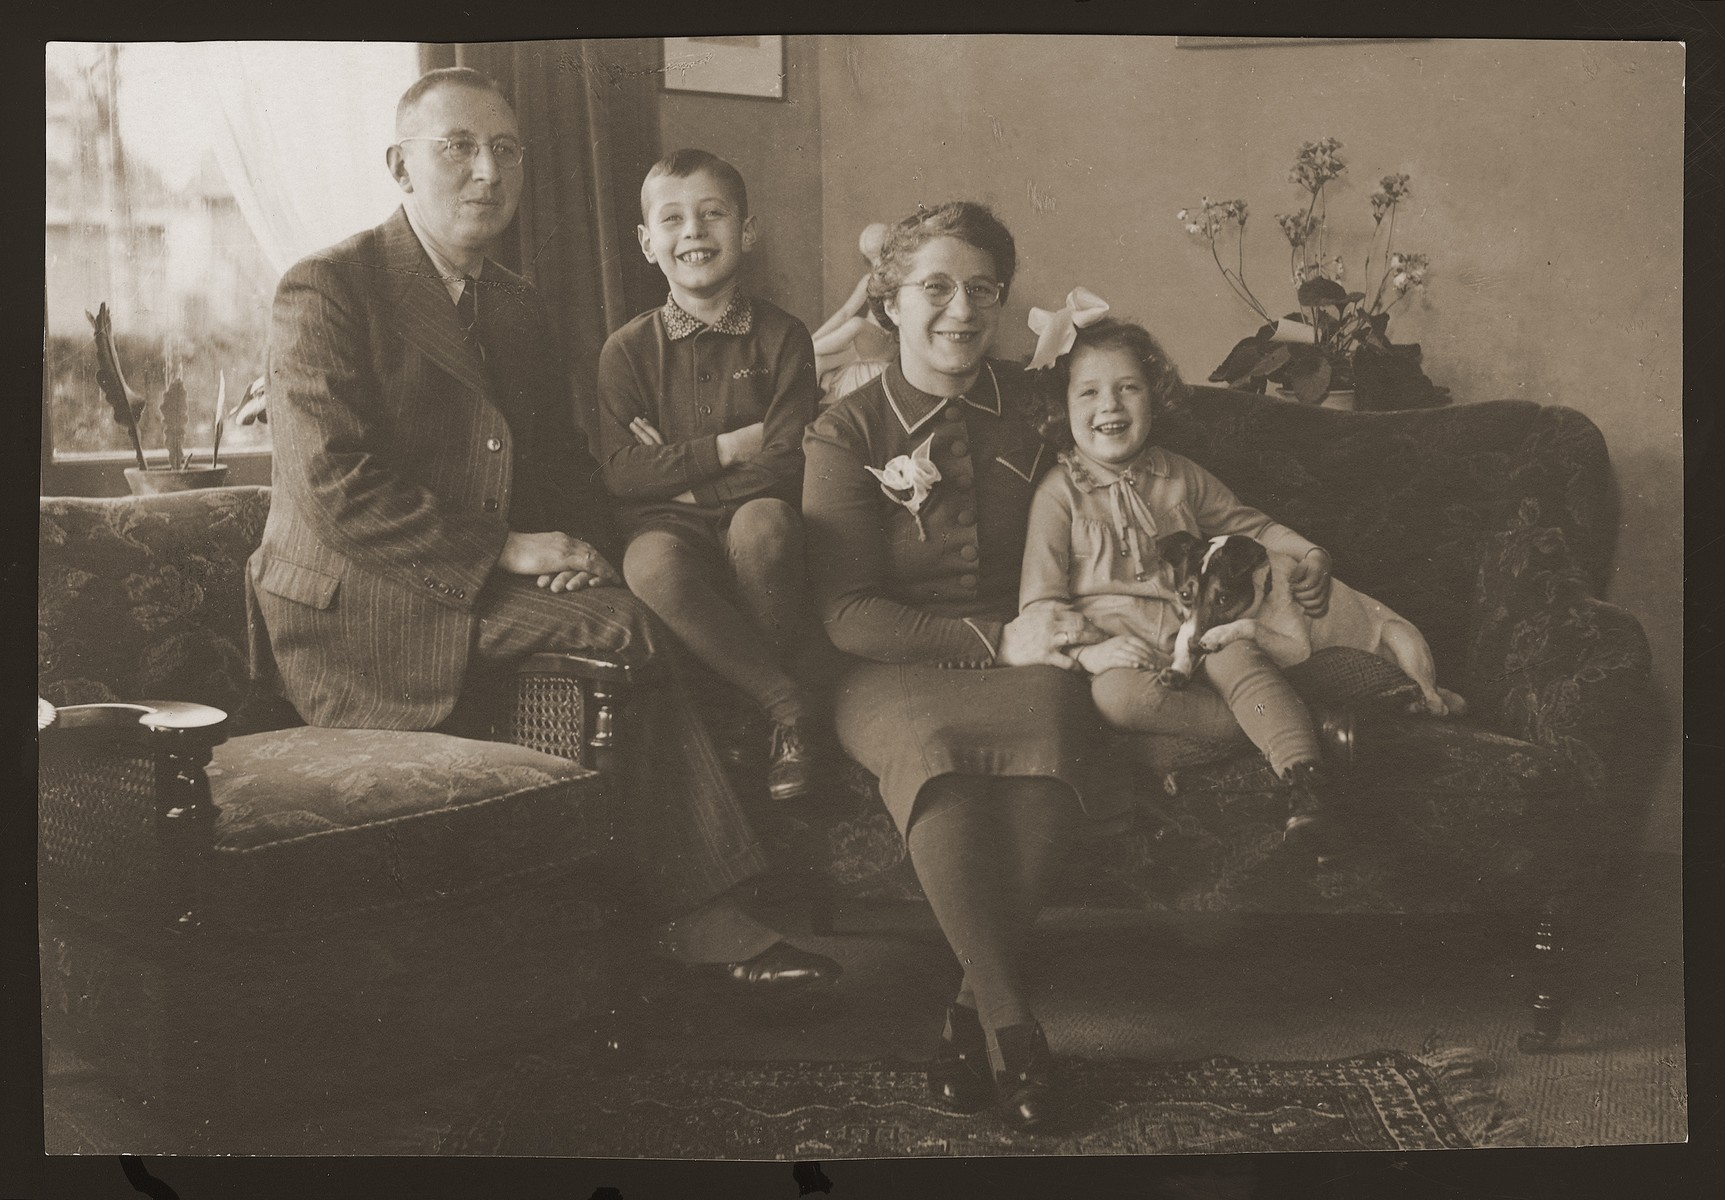 Meir and Shmuel Kats pose in their livingroom with their children Rachel and Bernhard.